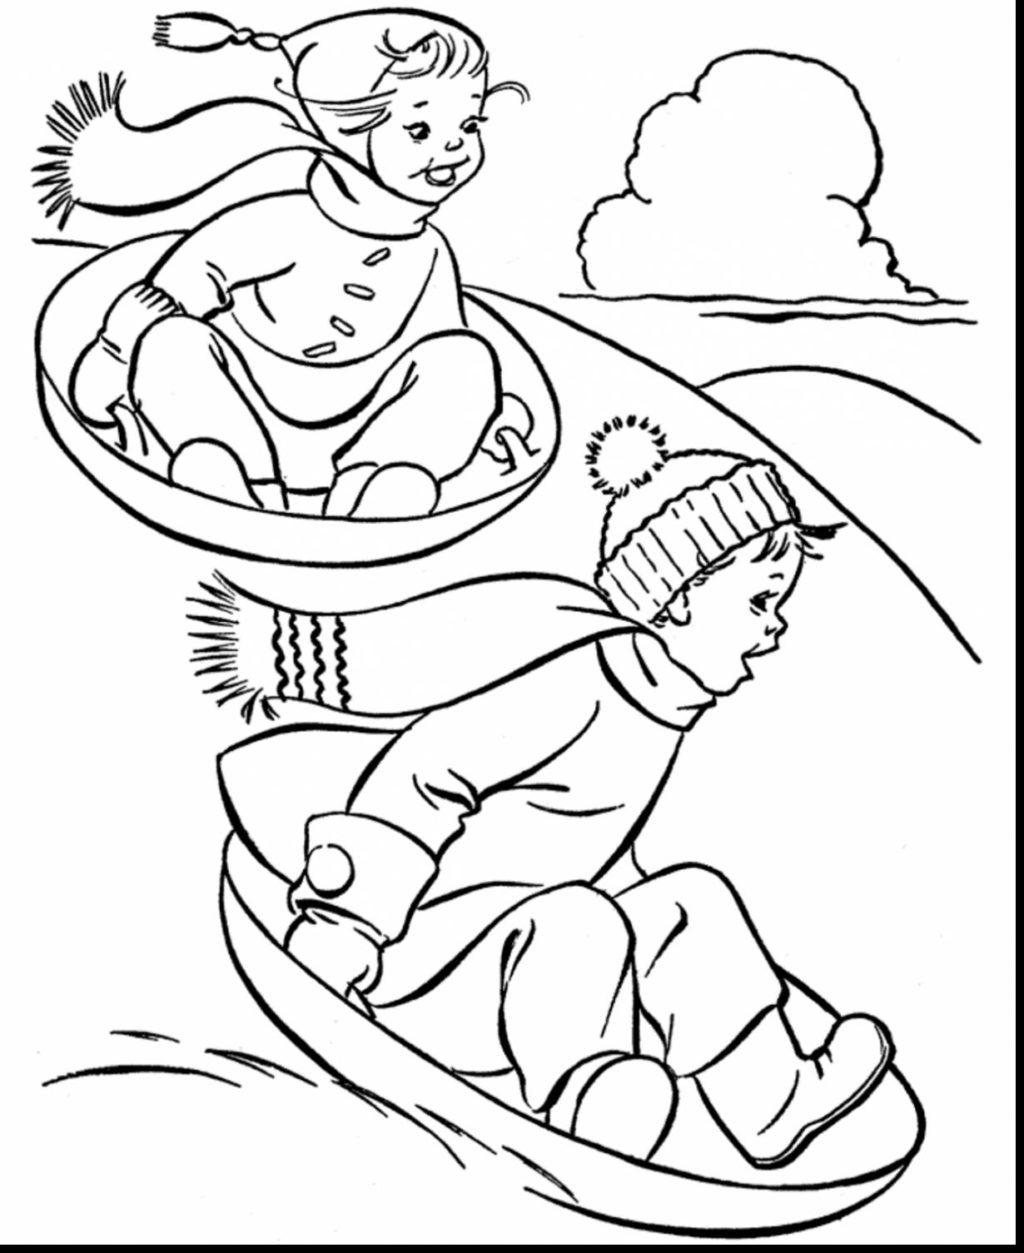 Winter Coloring Pages Printable Coloring Book World Awesome Winter Coloring Pages For Kidsl Free